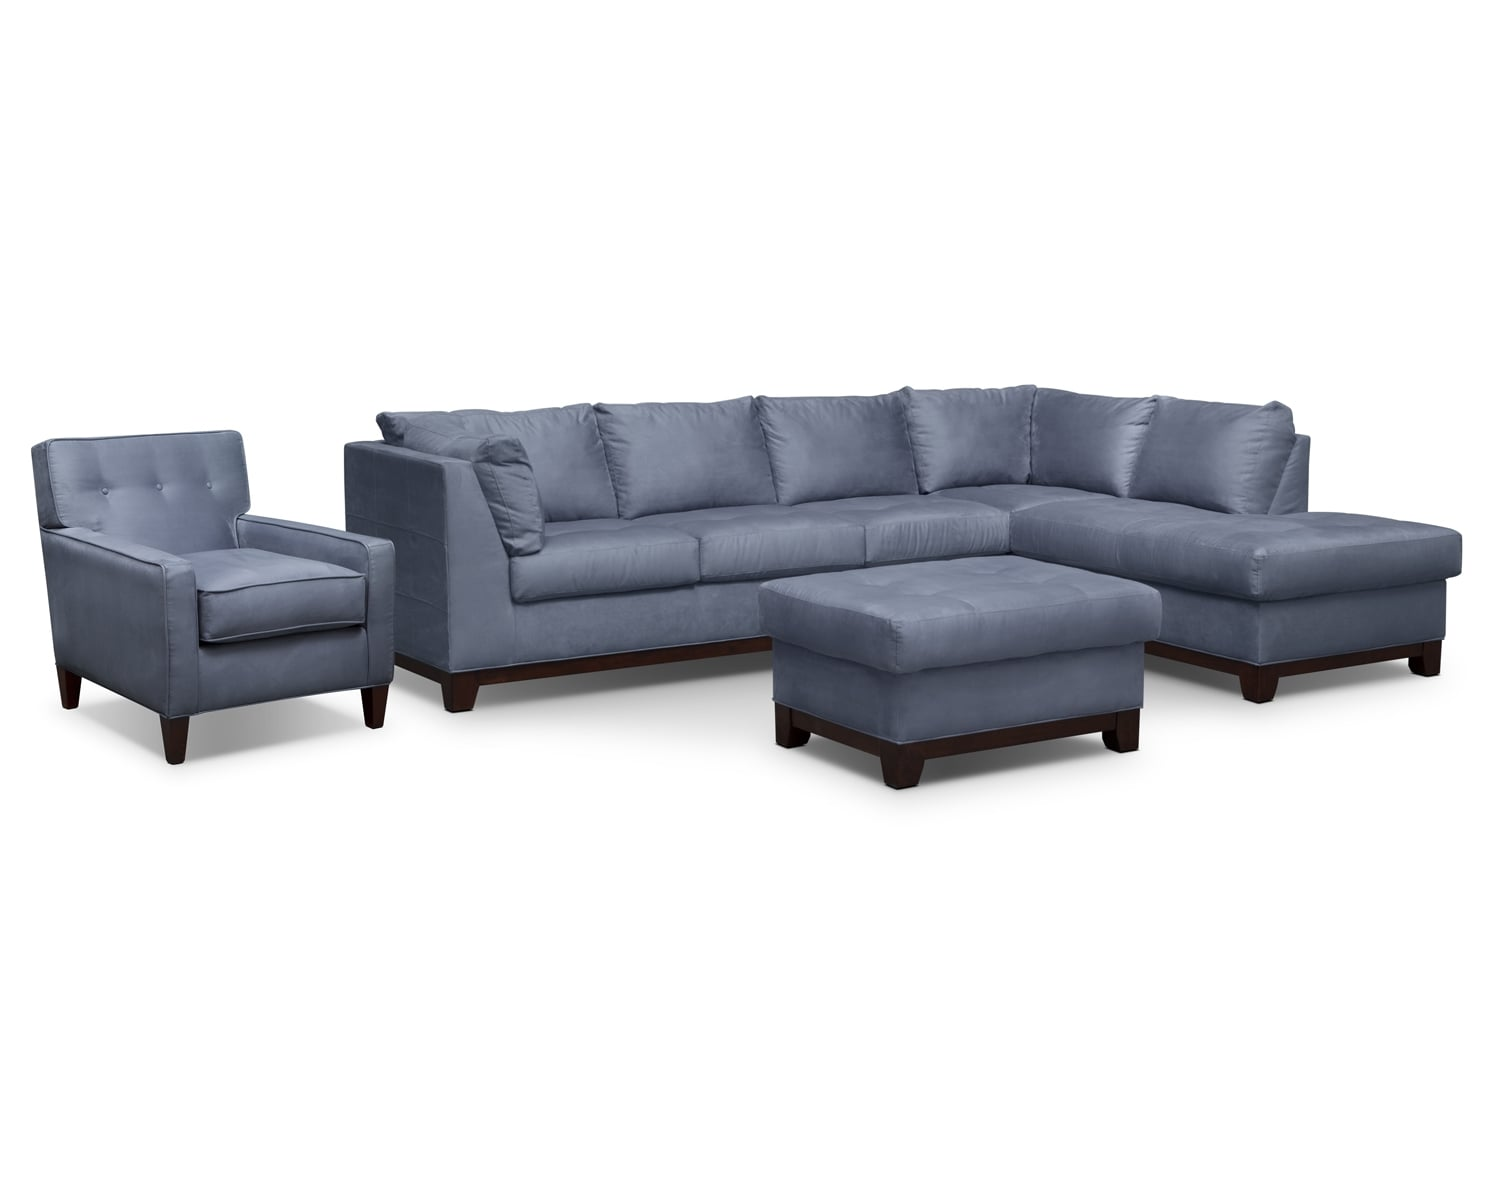 The Soho Sectional Collection - Steel